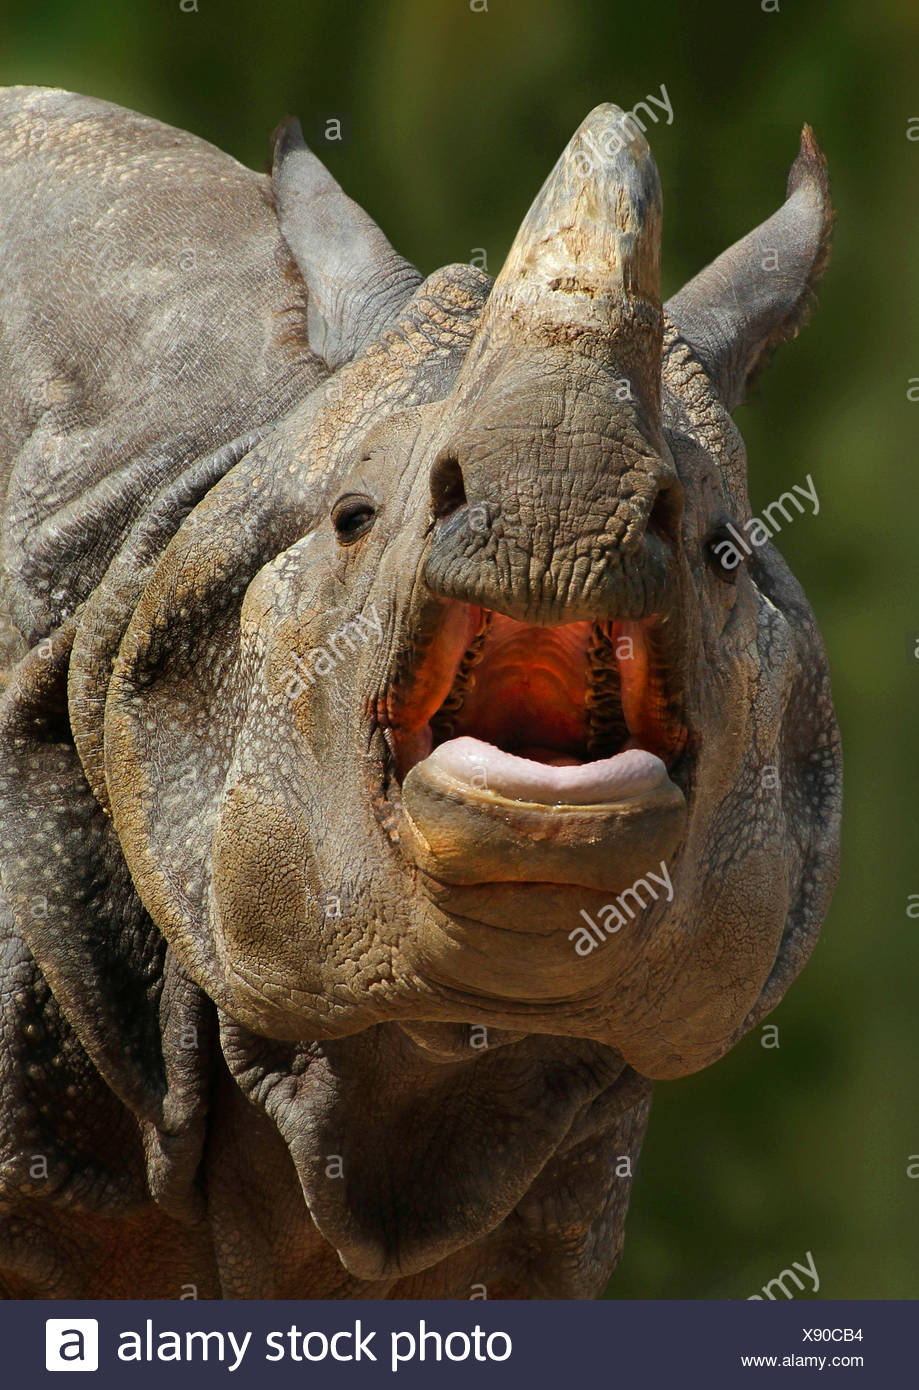 Greater Indian rhinoceros, Great Indian One-horned rhinoceros (Rhinoceros unicornis), portrait with mouth open, India - Stock Image